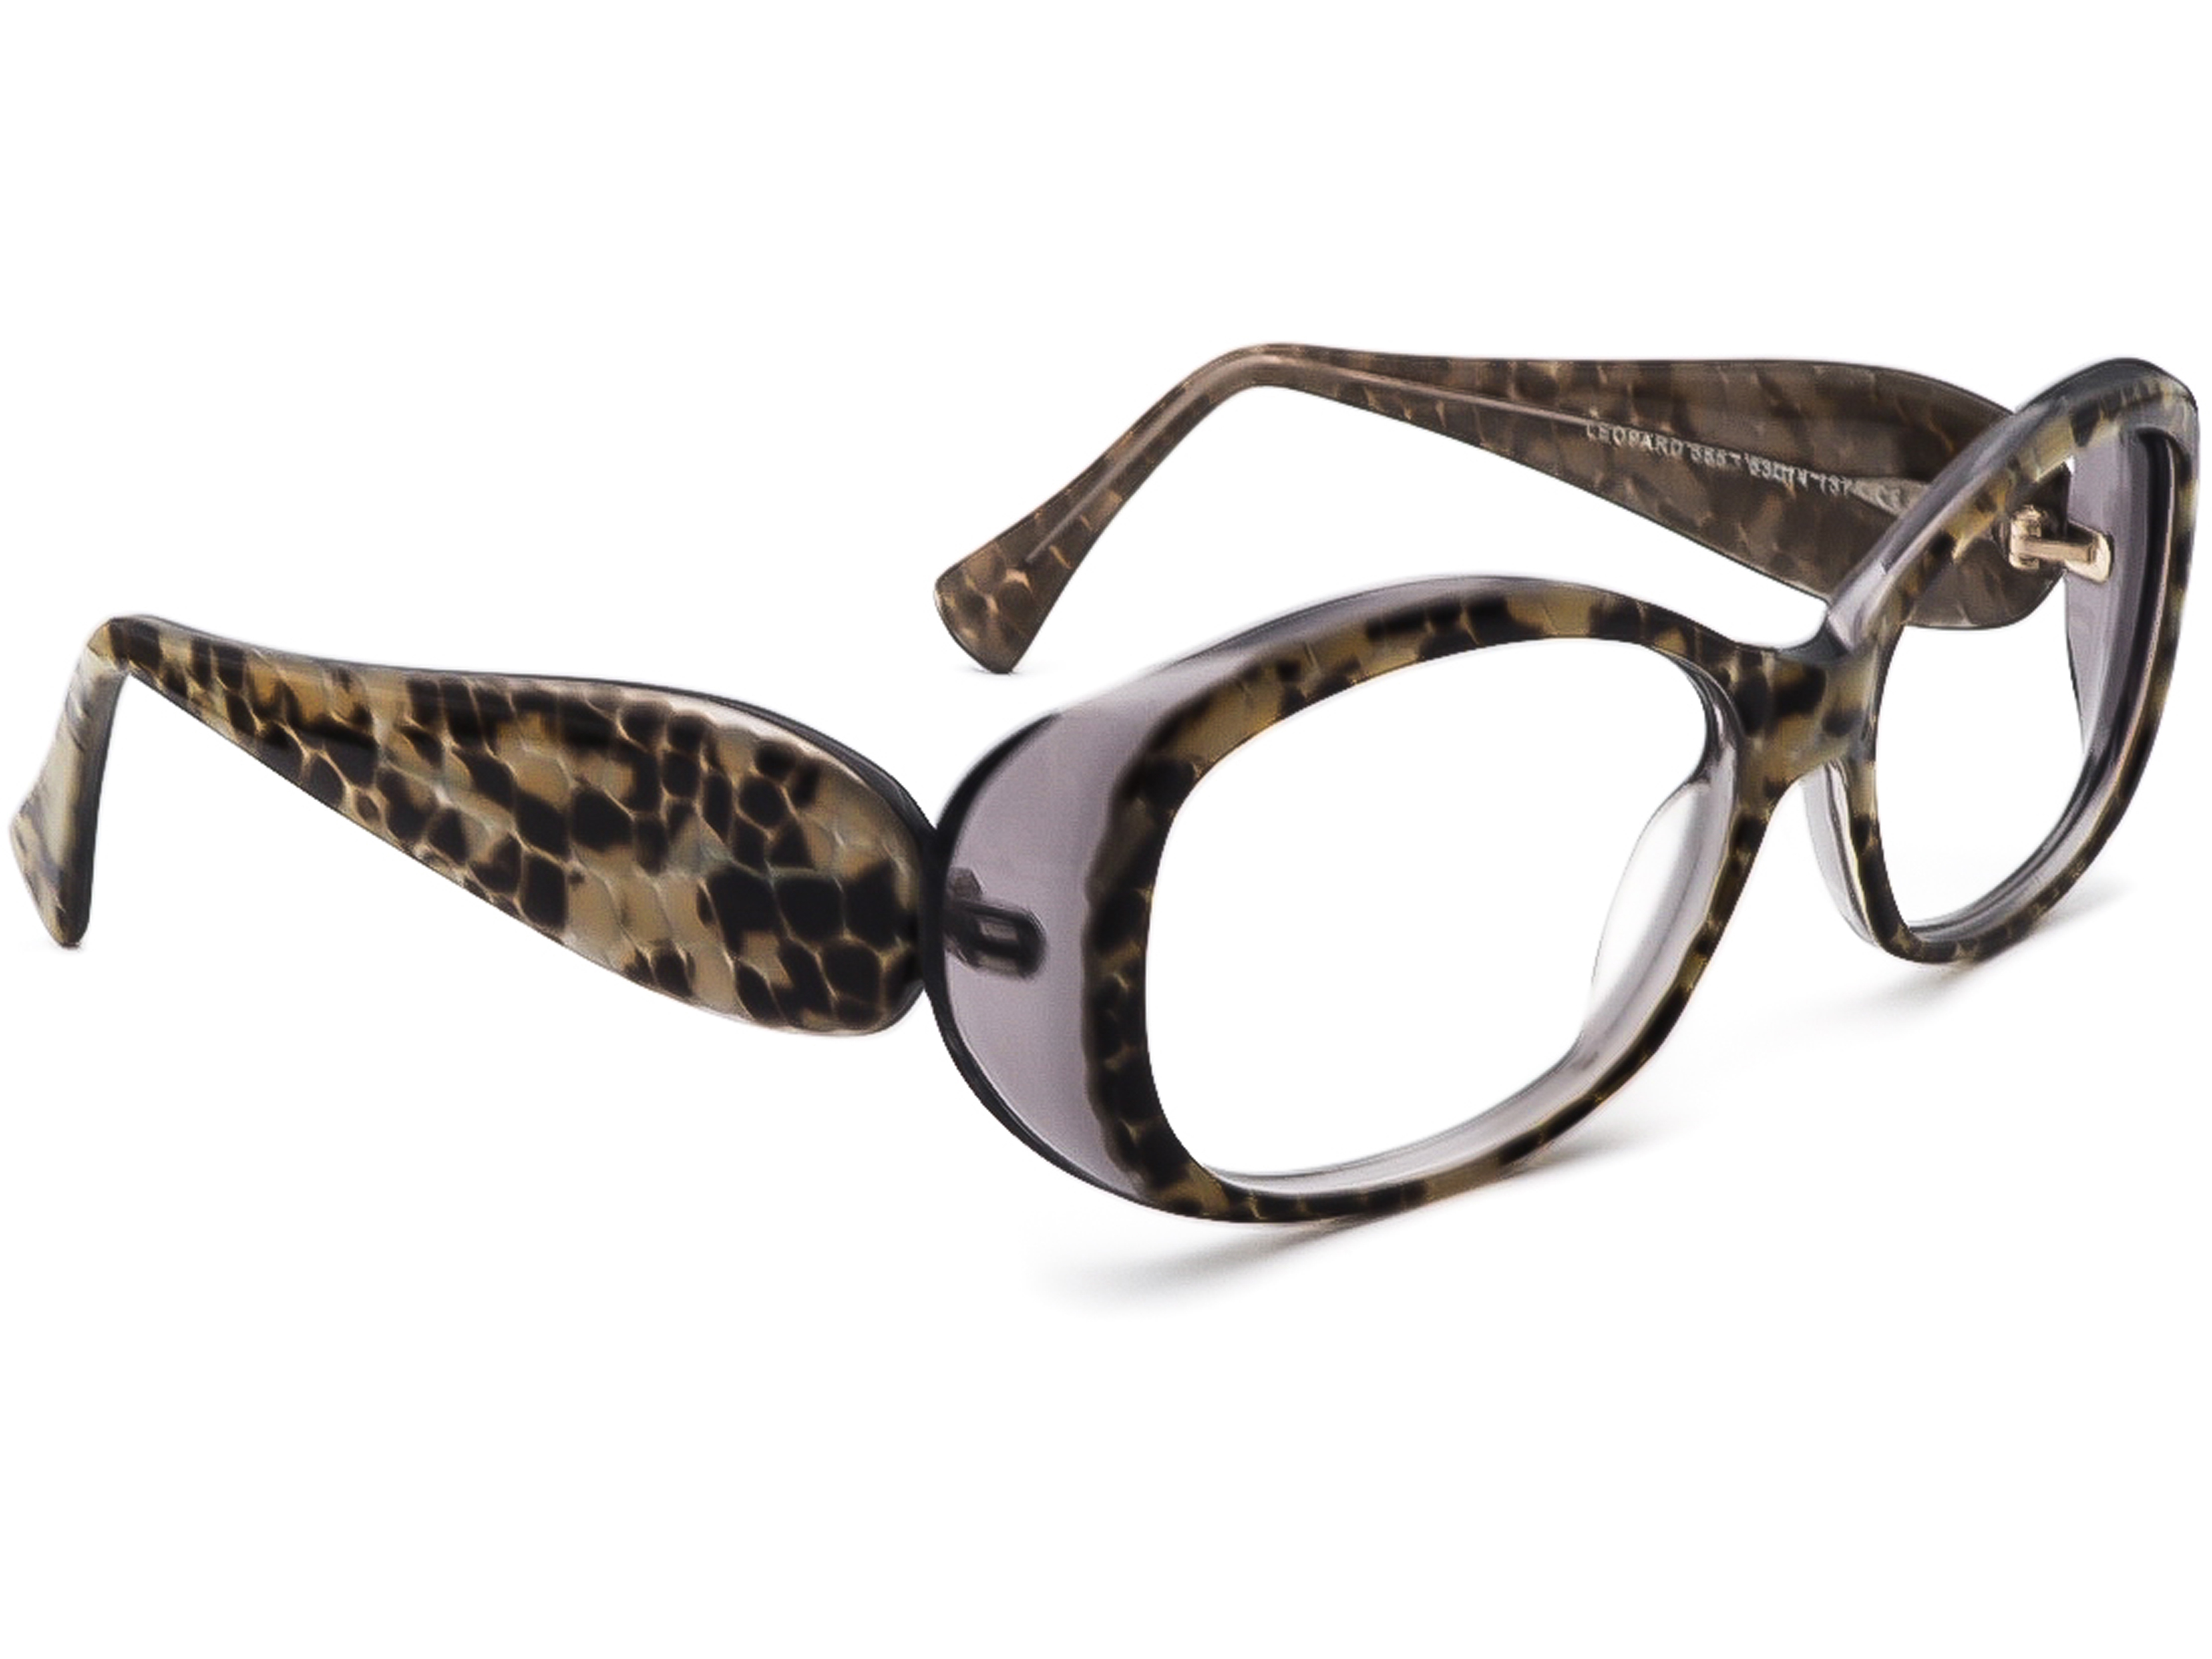 Jean Lafont LEOPARD 565 Sunglasses Frame Only